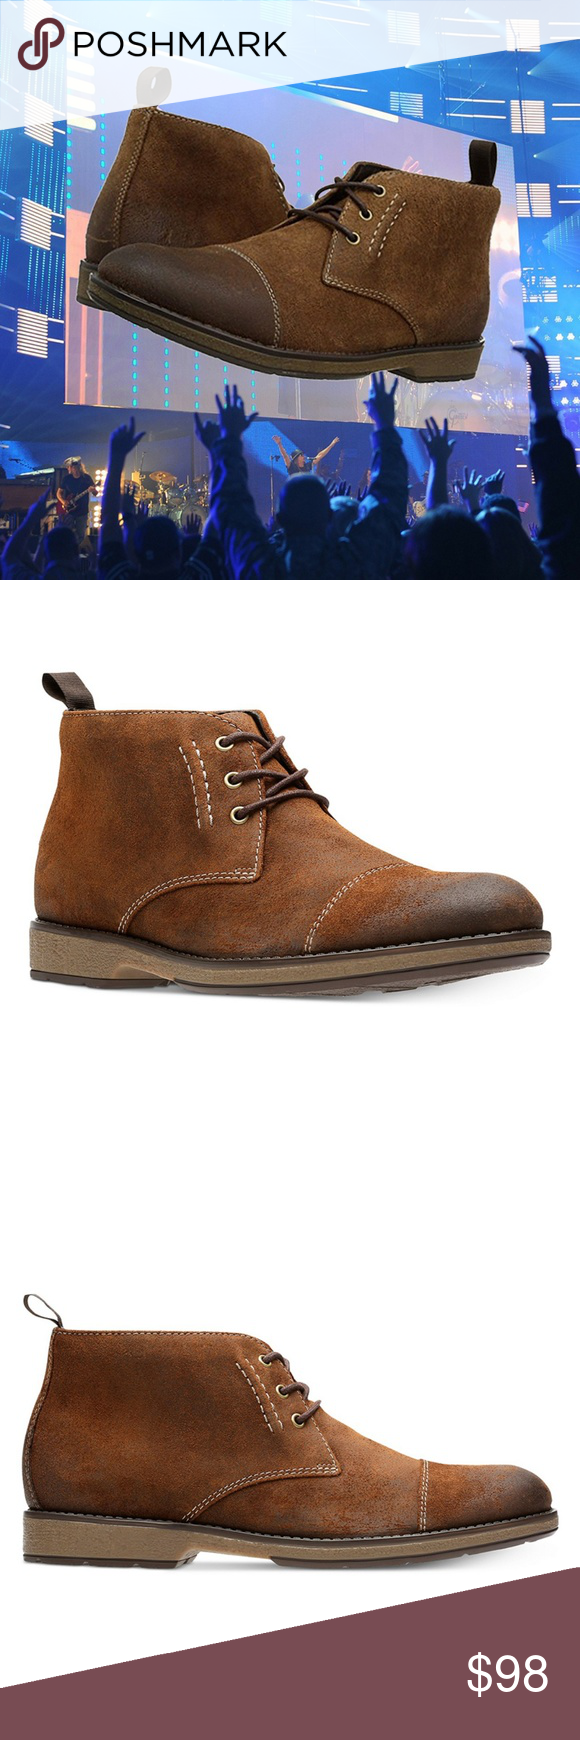 fb6c7a5fe01b3 I just added this listing on Poshmark: Clarks Men's Hinman Mid Chukka Boots  Suede. #shopmycloset #poshmark #fashion #shopping #style #forsale #Clarks  #Other